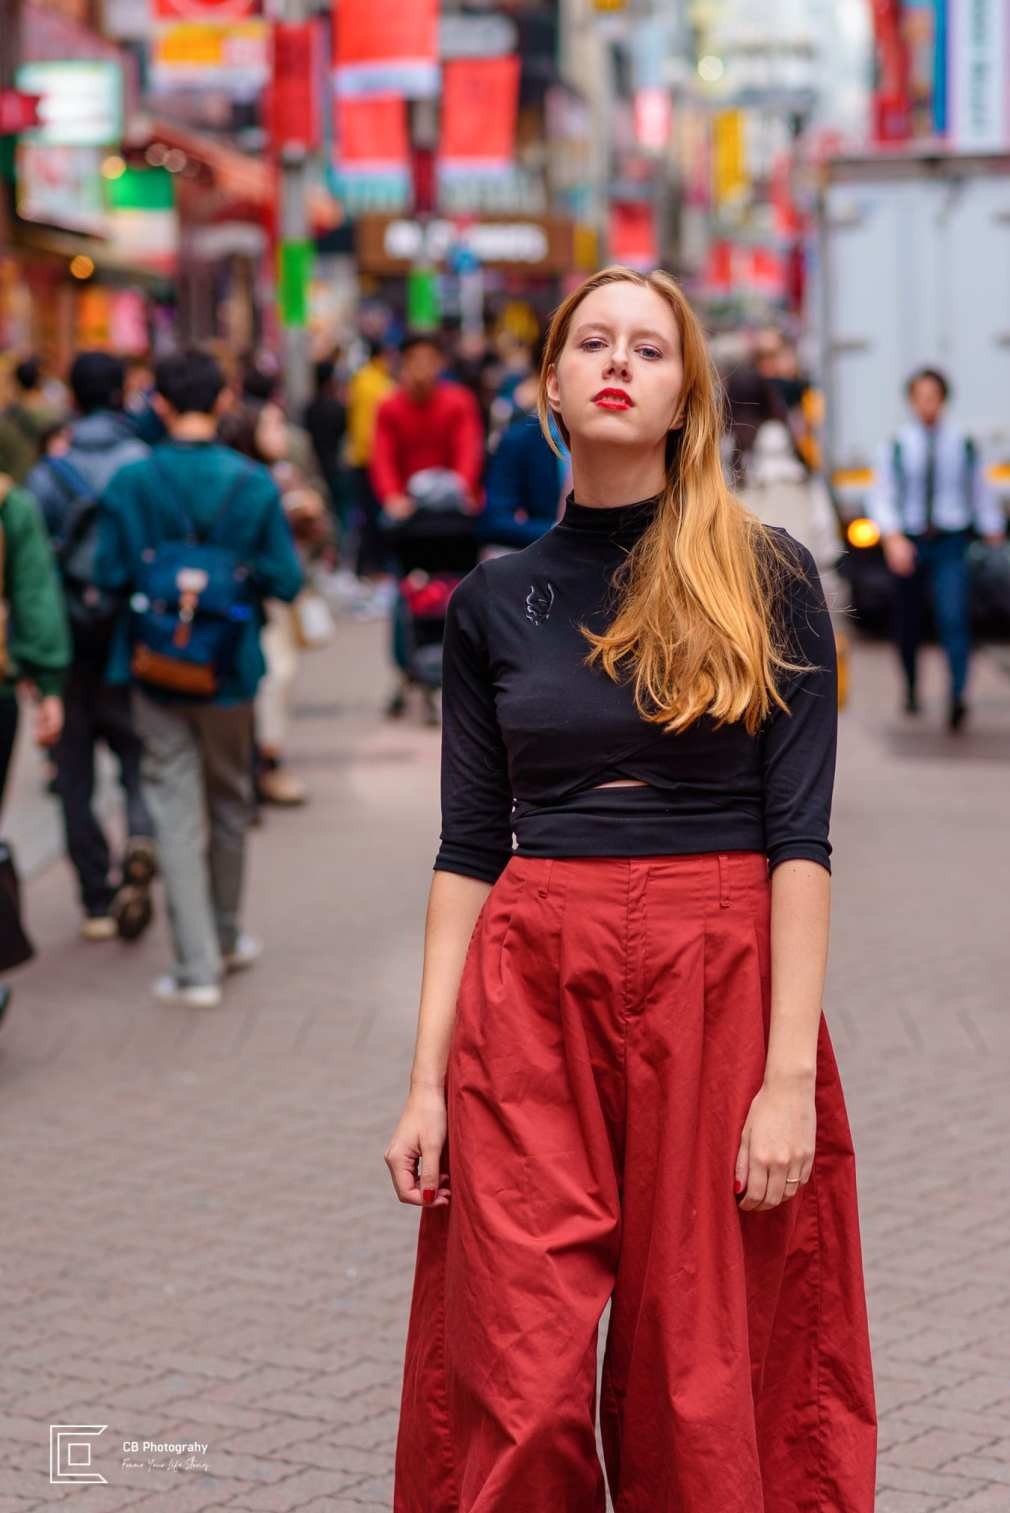 Portrait of a model from a portrait shoot in Shibuya by the Tokyo Portrait Photographer Cristian Bucur